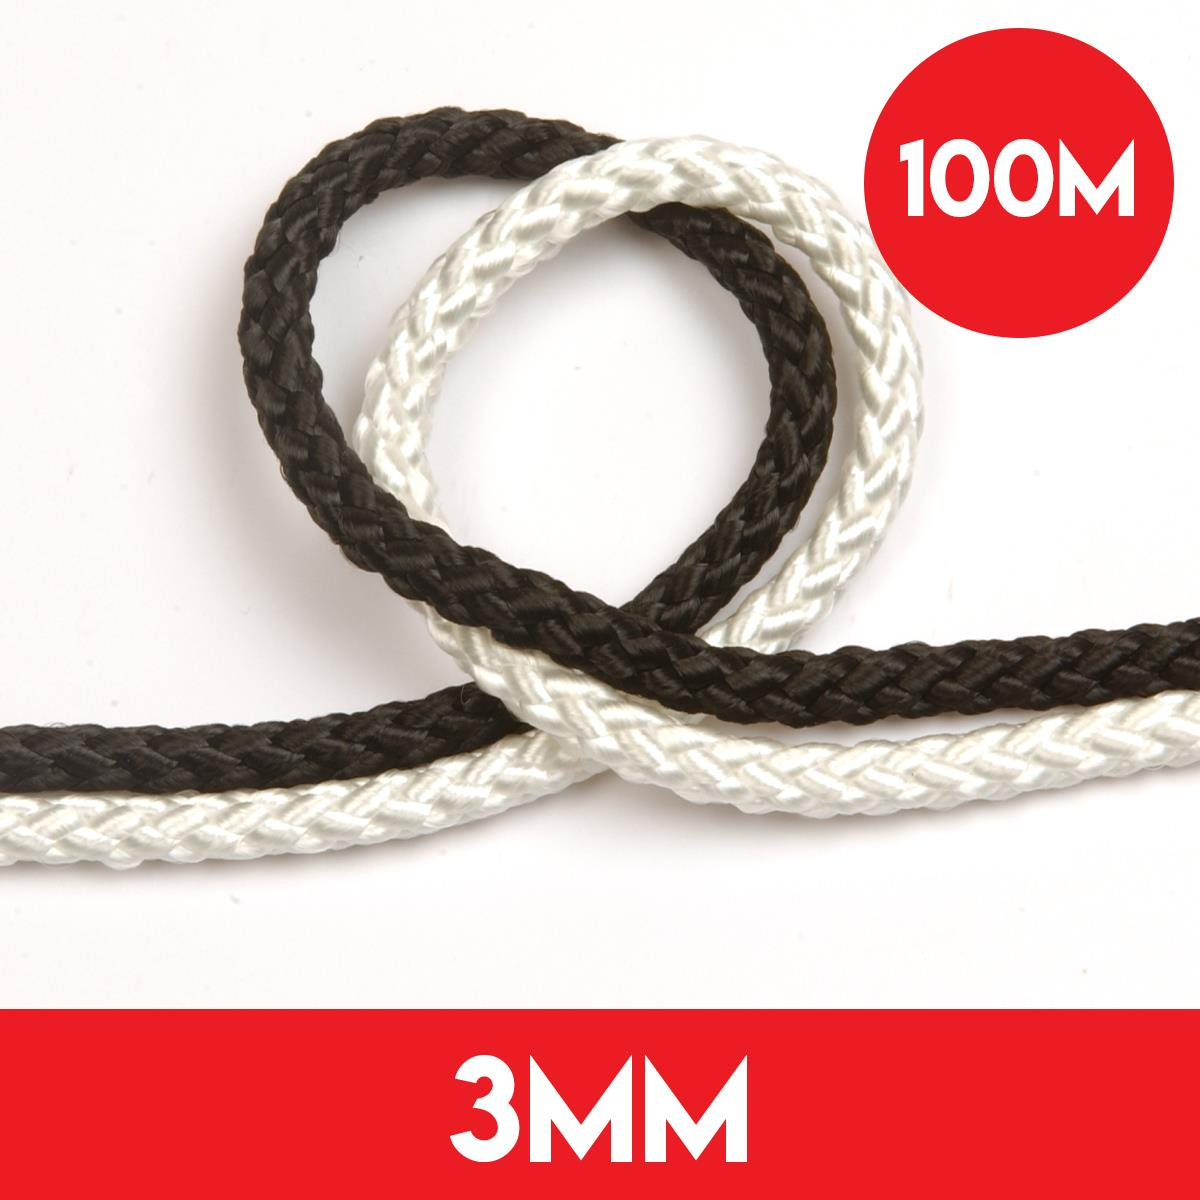 100m of 3mm 8 Plait Standard Polyester Rope